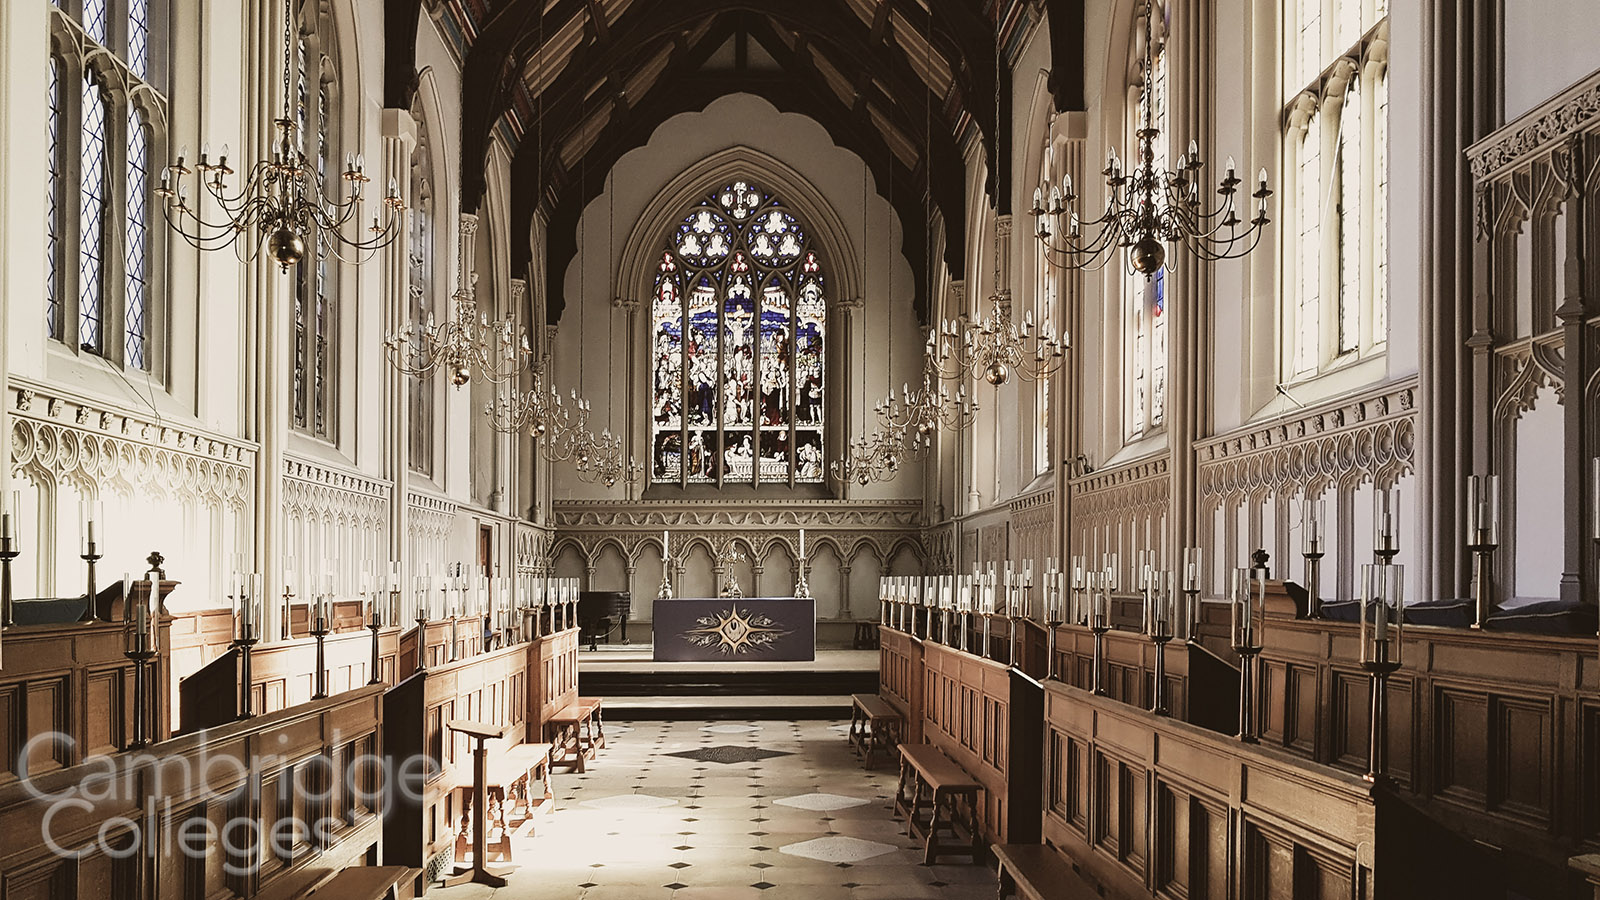 Inside the chapel of Corpus Christi college, Cambridge